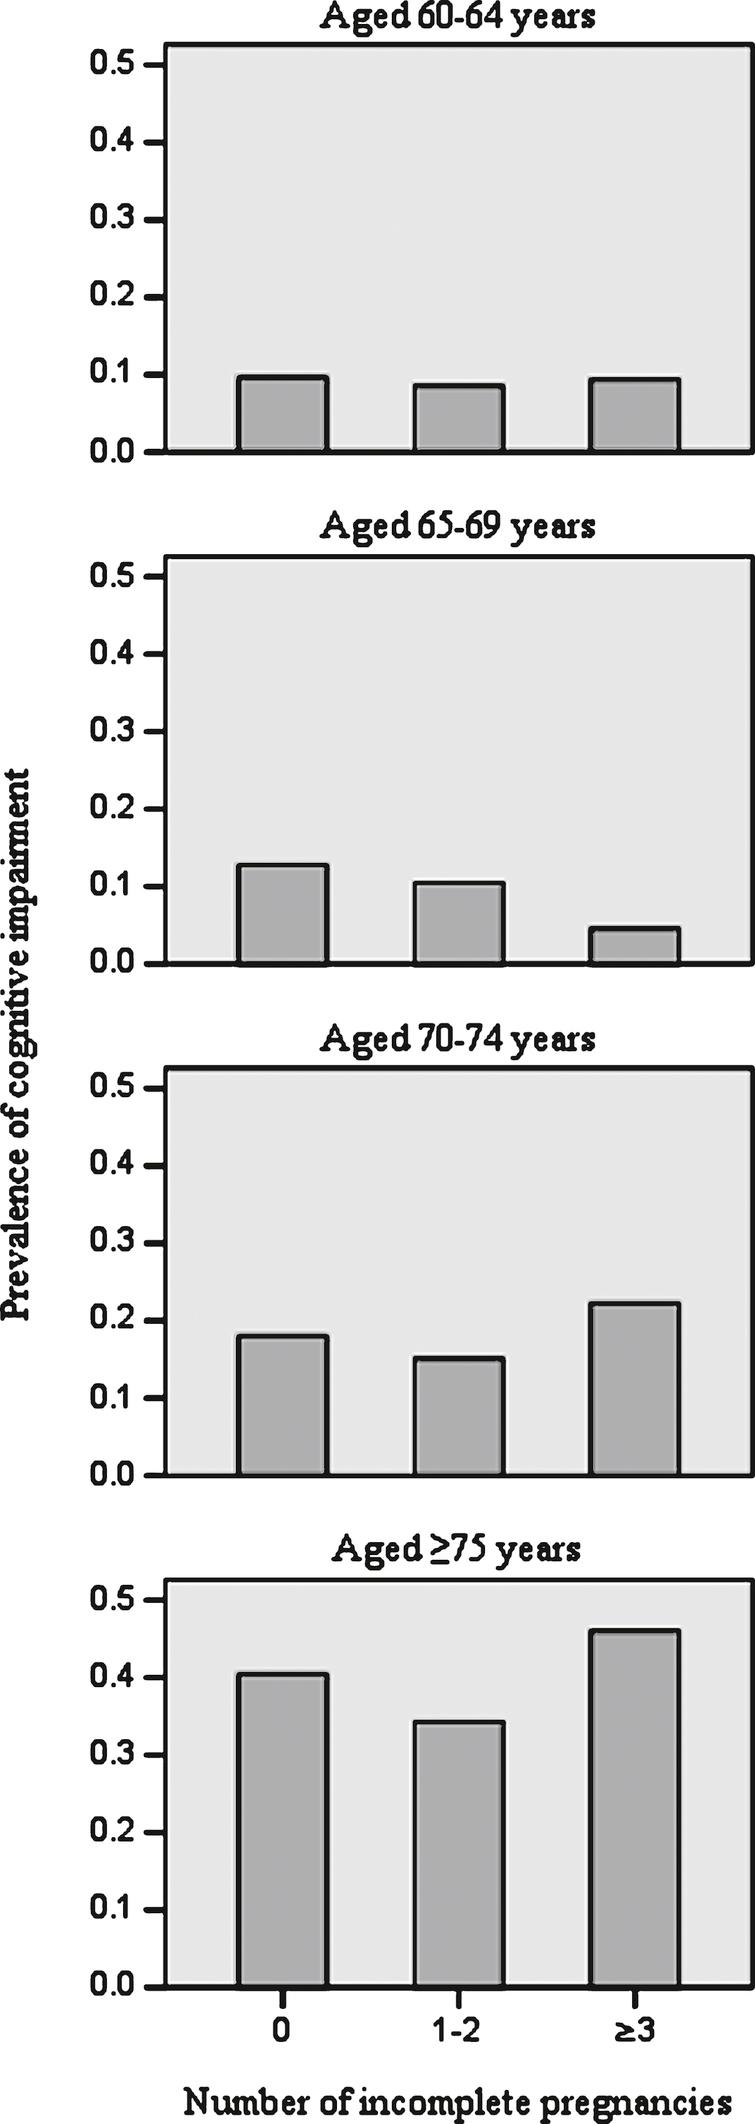 Crude age-specific prevalence of cognitive impairment by number of incomplete pregnancies.